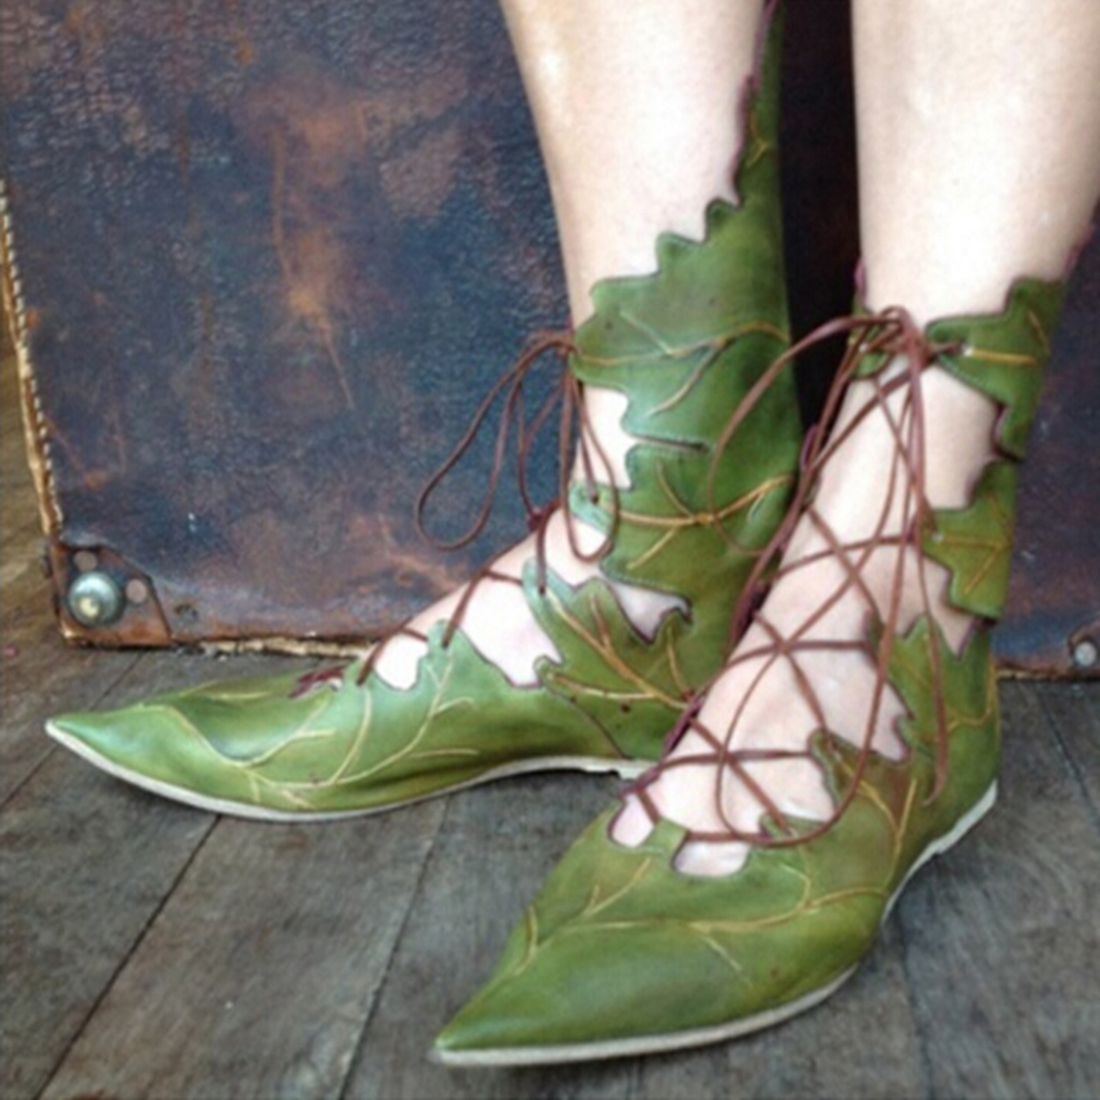 Casual-Shoes Leaf-Style Ankle-Strappy Pointed-Toe Autumn Green Gladiator Lace-Up Flat